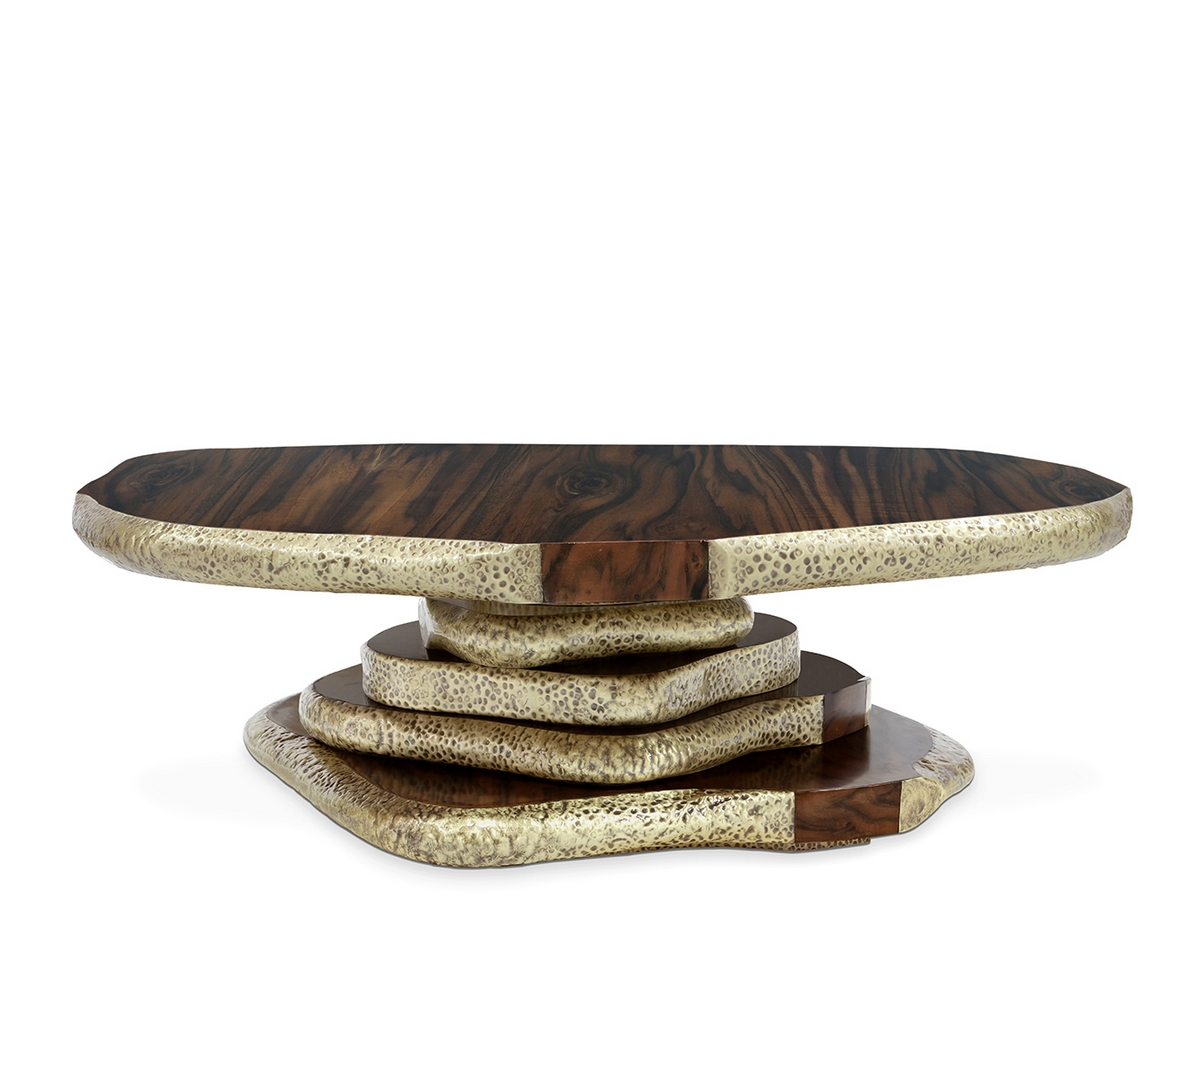 artistic center tables Artistic Center Tables To Inspire You latza center table zoom